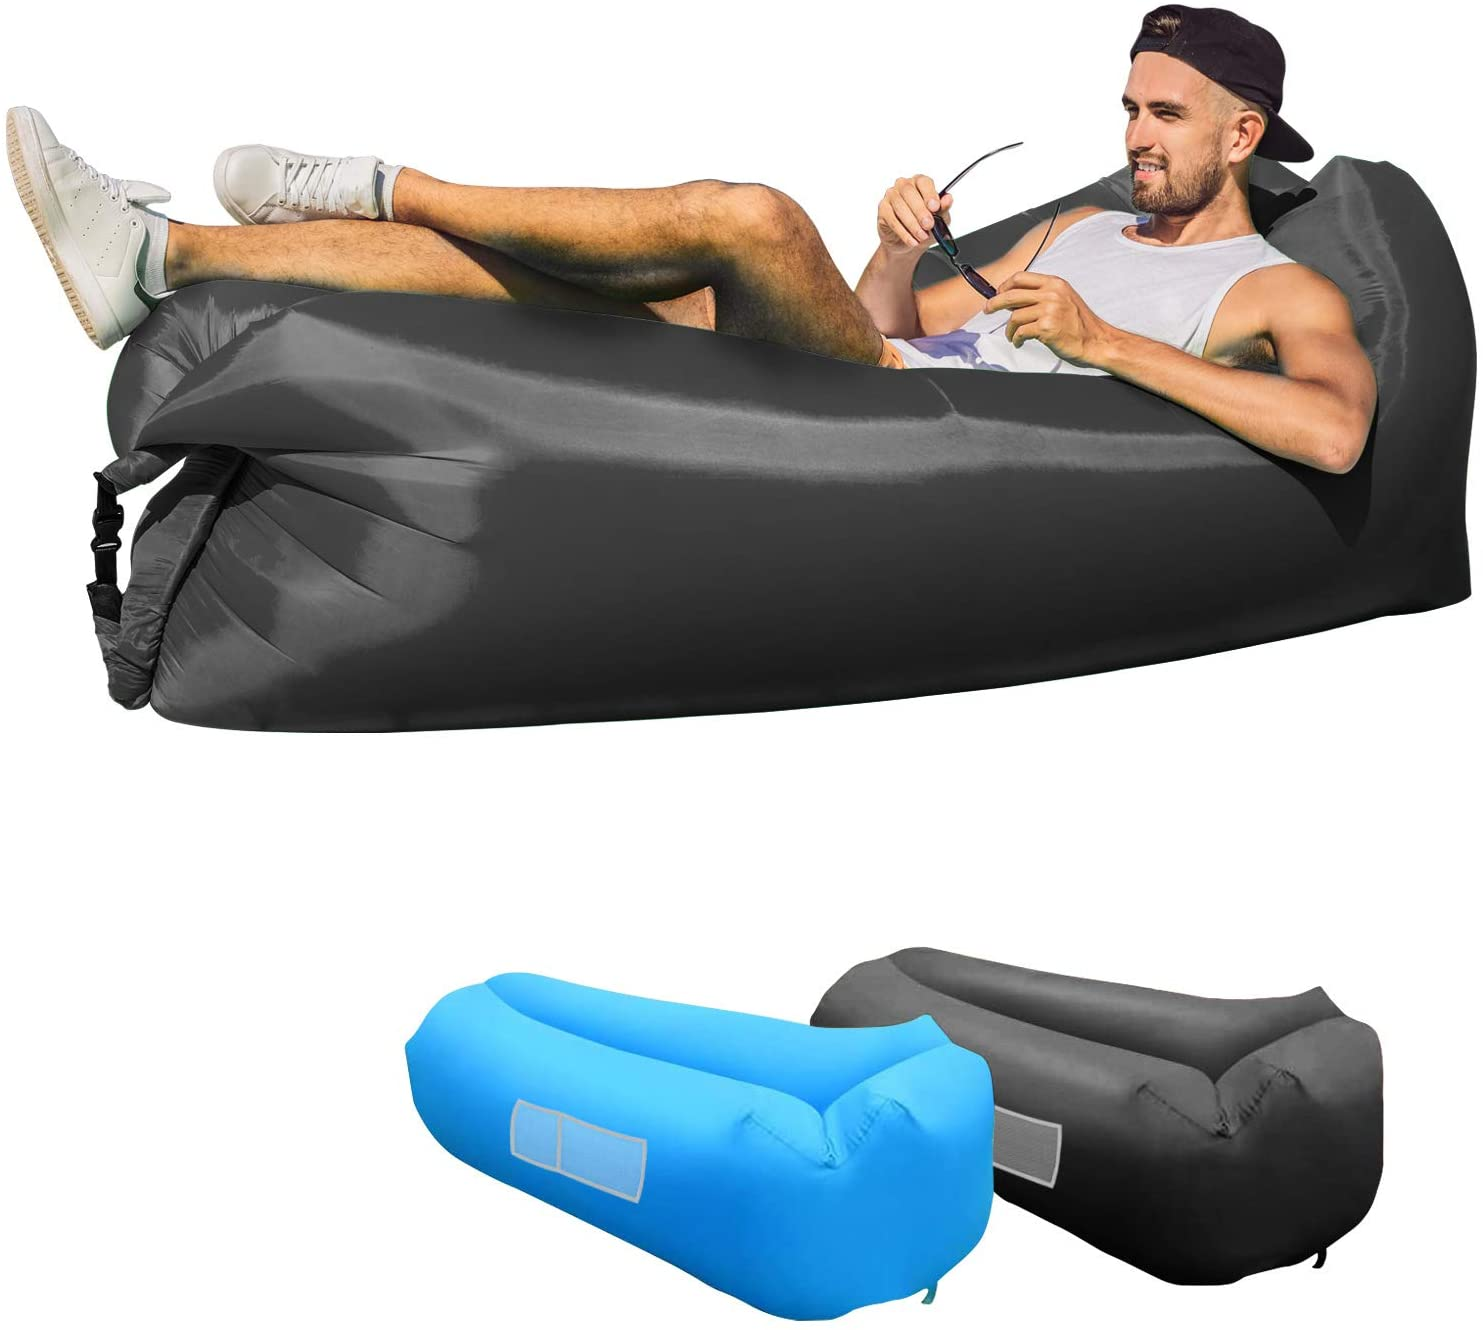 KXLY Inflatable Lounger Air Sofa